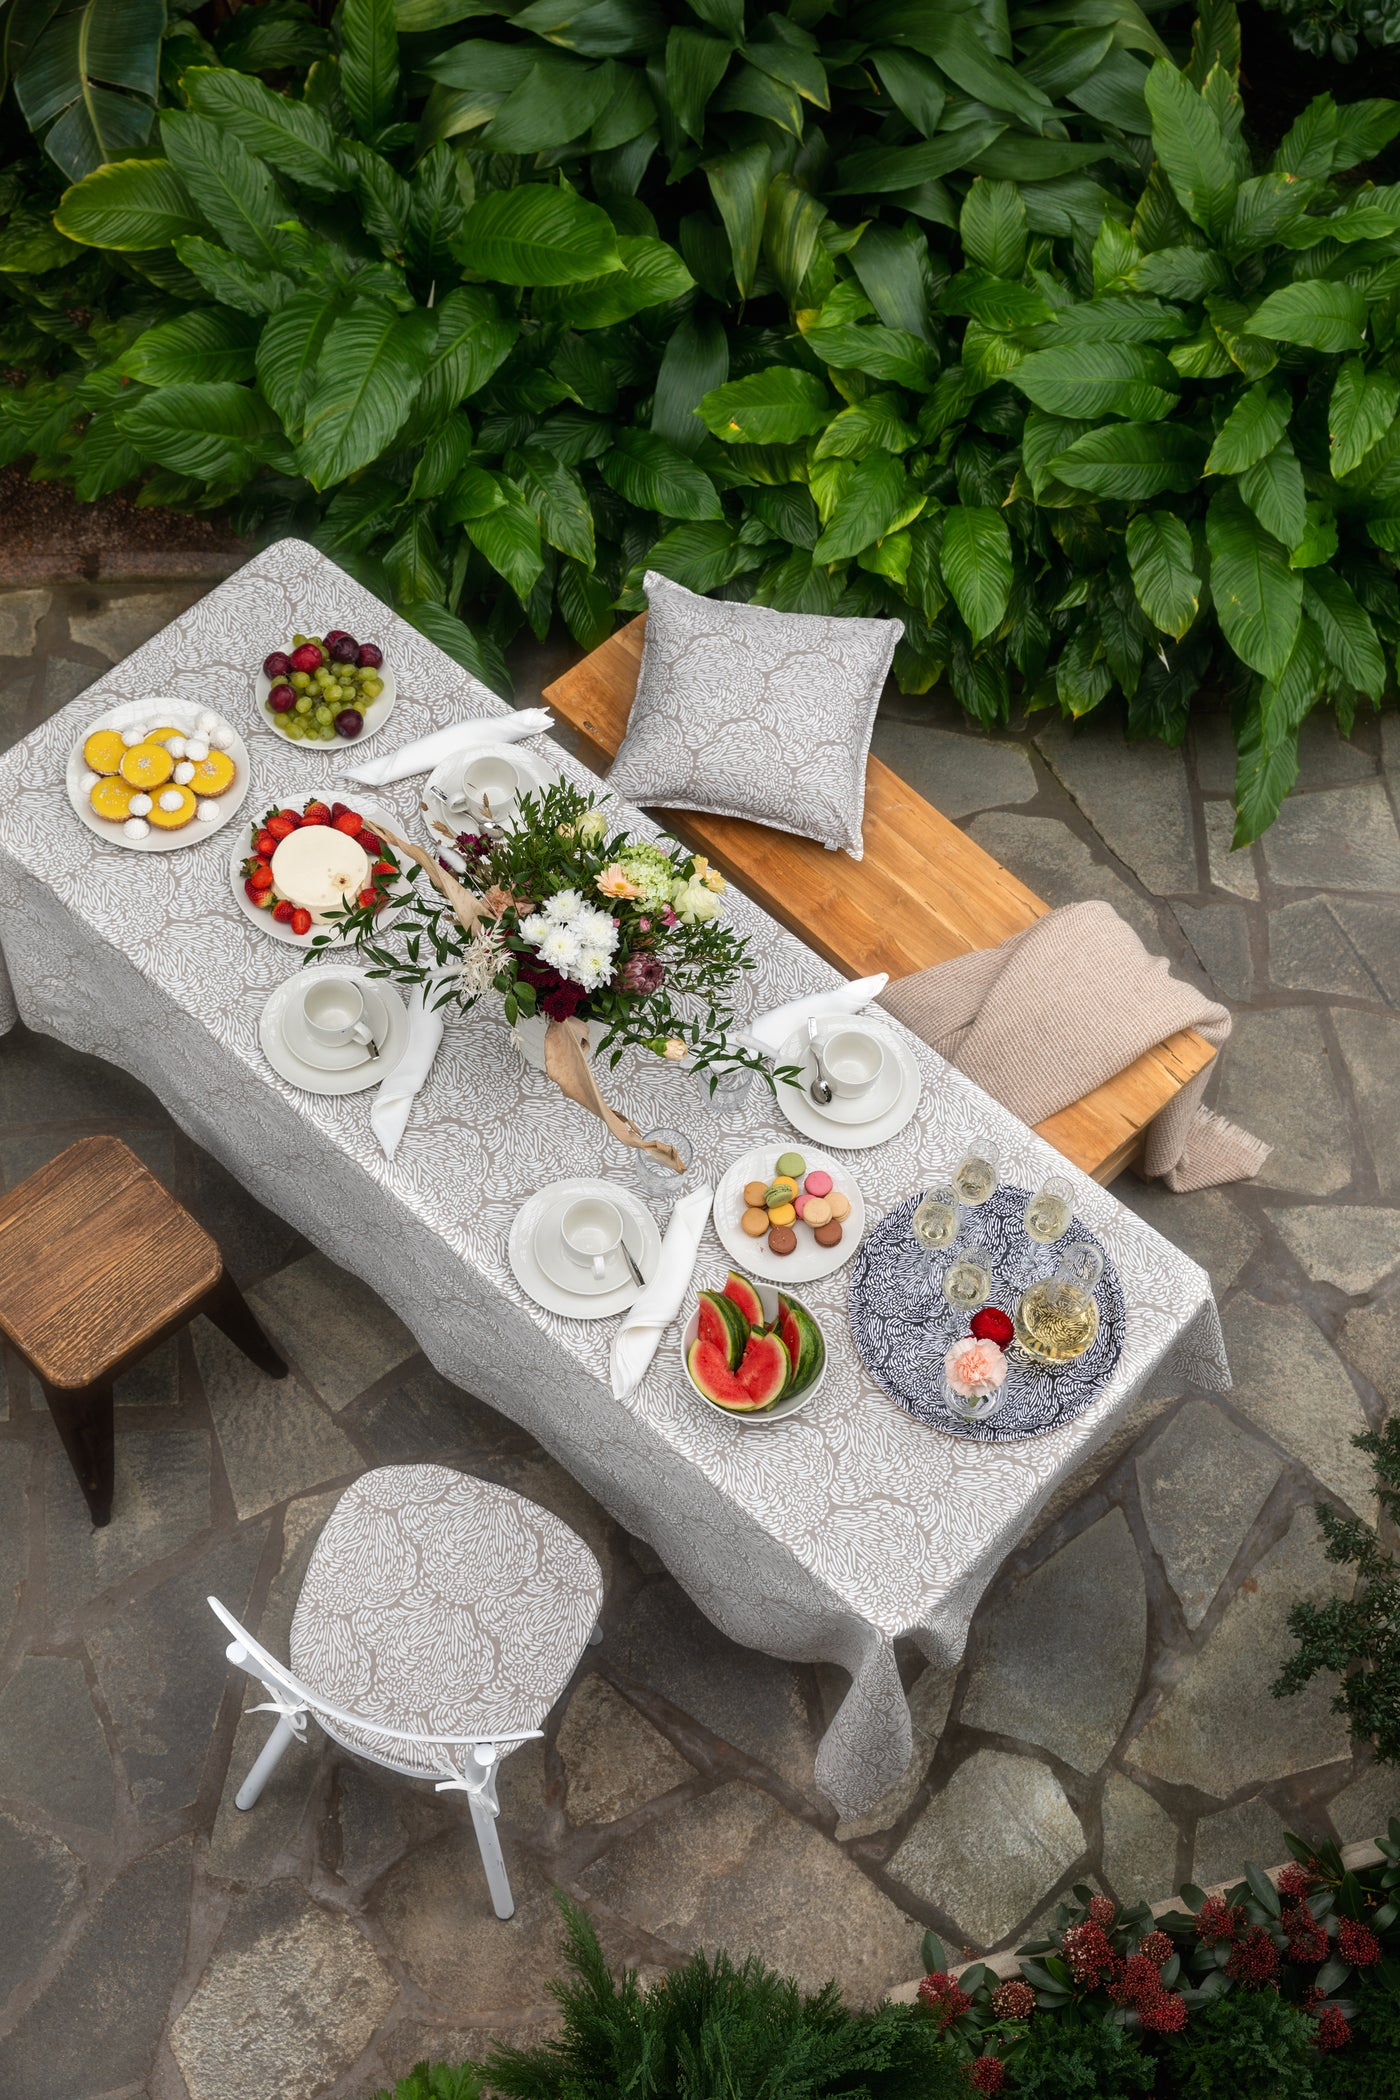 Shop The Look: Set the celebrations into the garden!